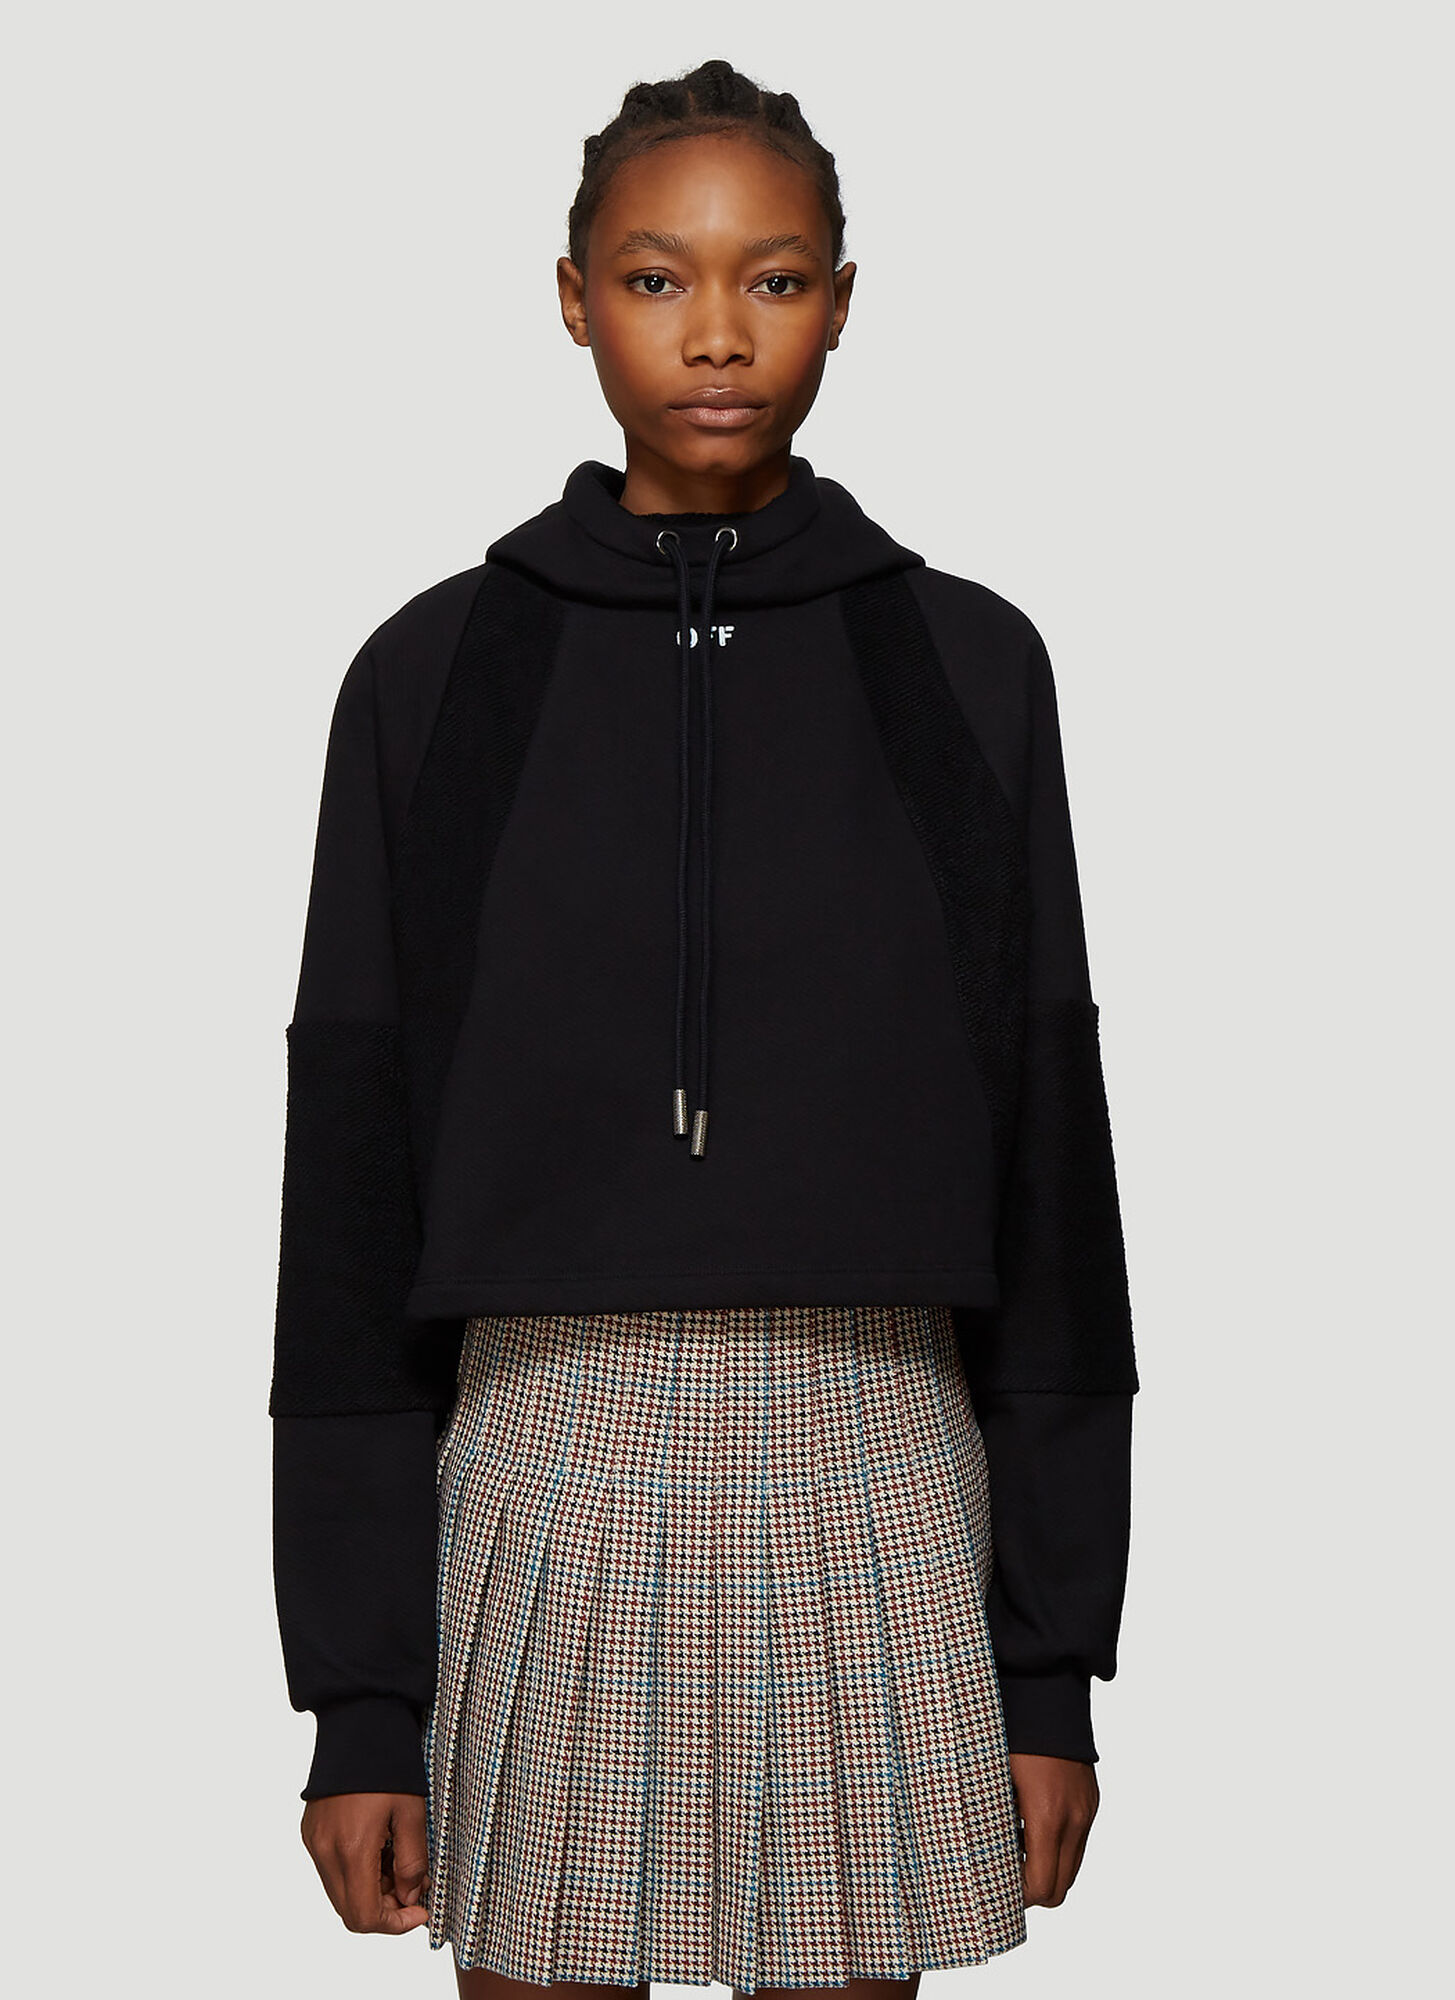 Off-White Contrast Panel Cropped Hooded Sweatshirt in Black